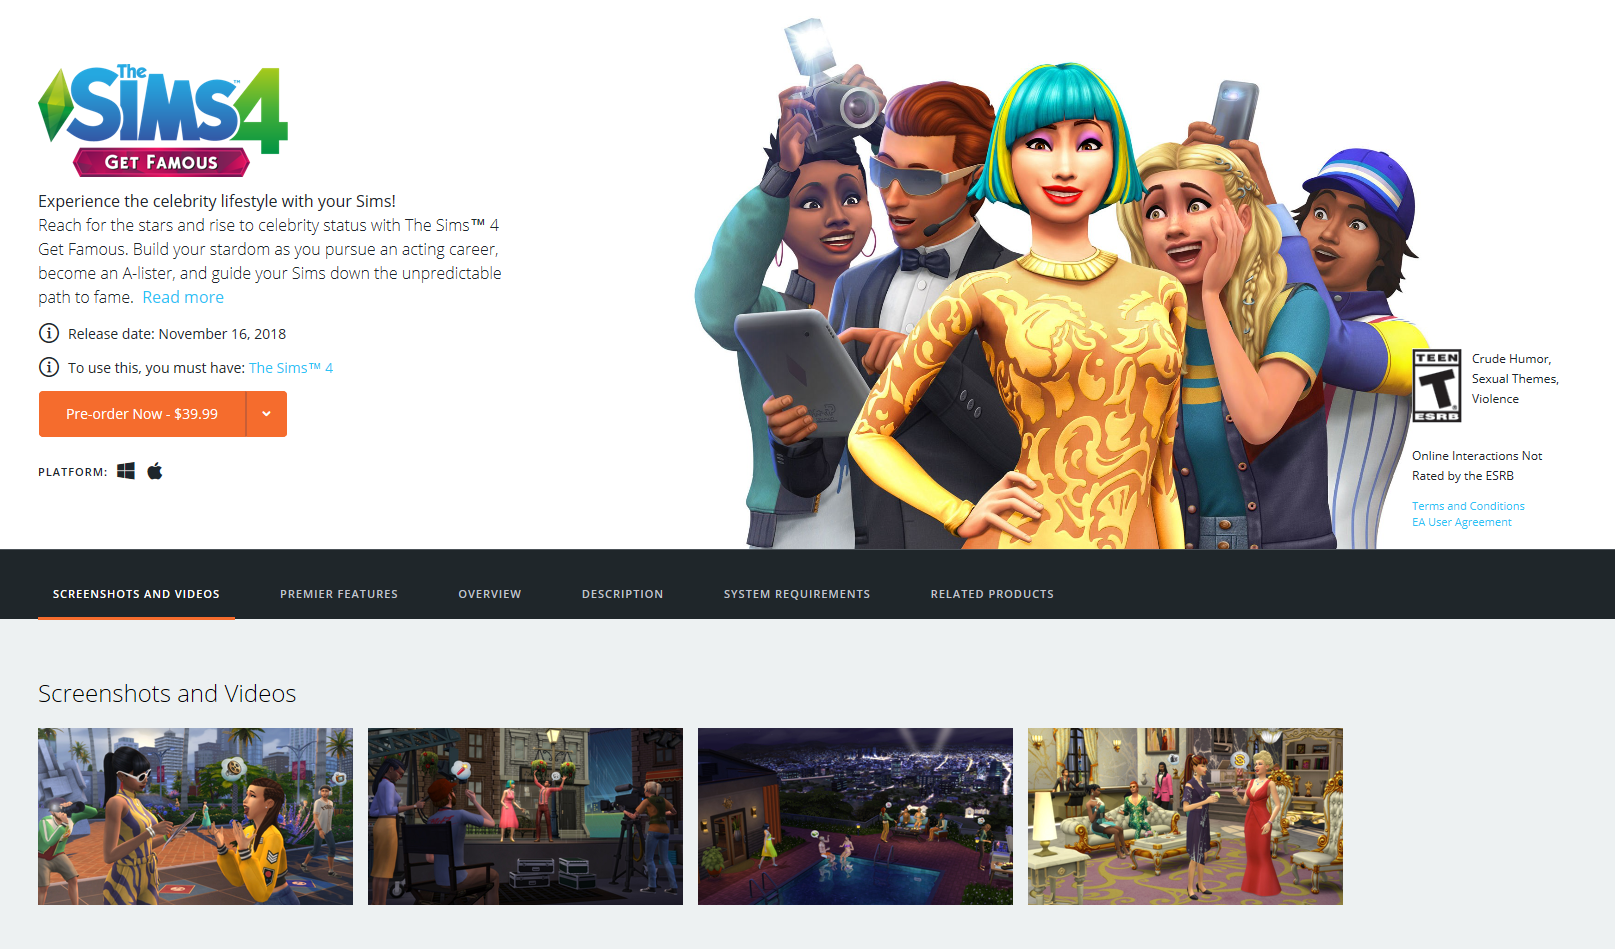 Origin: Pre-Order The Sims 4 Get Famous Expansion Pack | SimsVIP